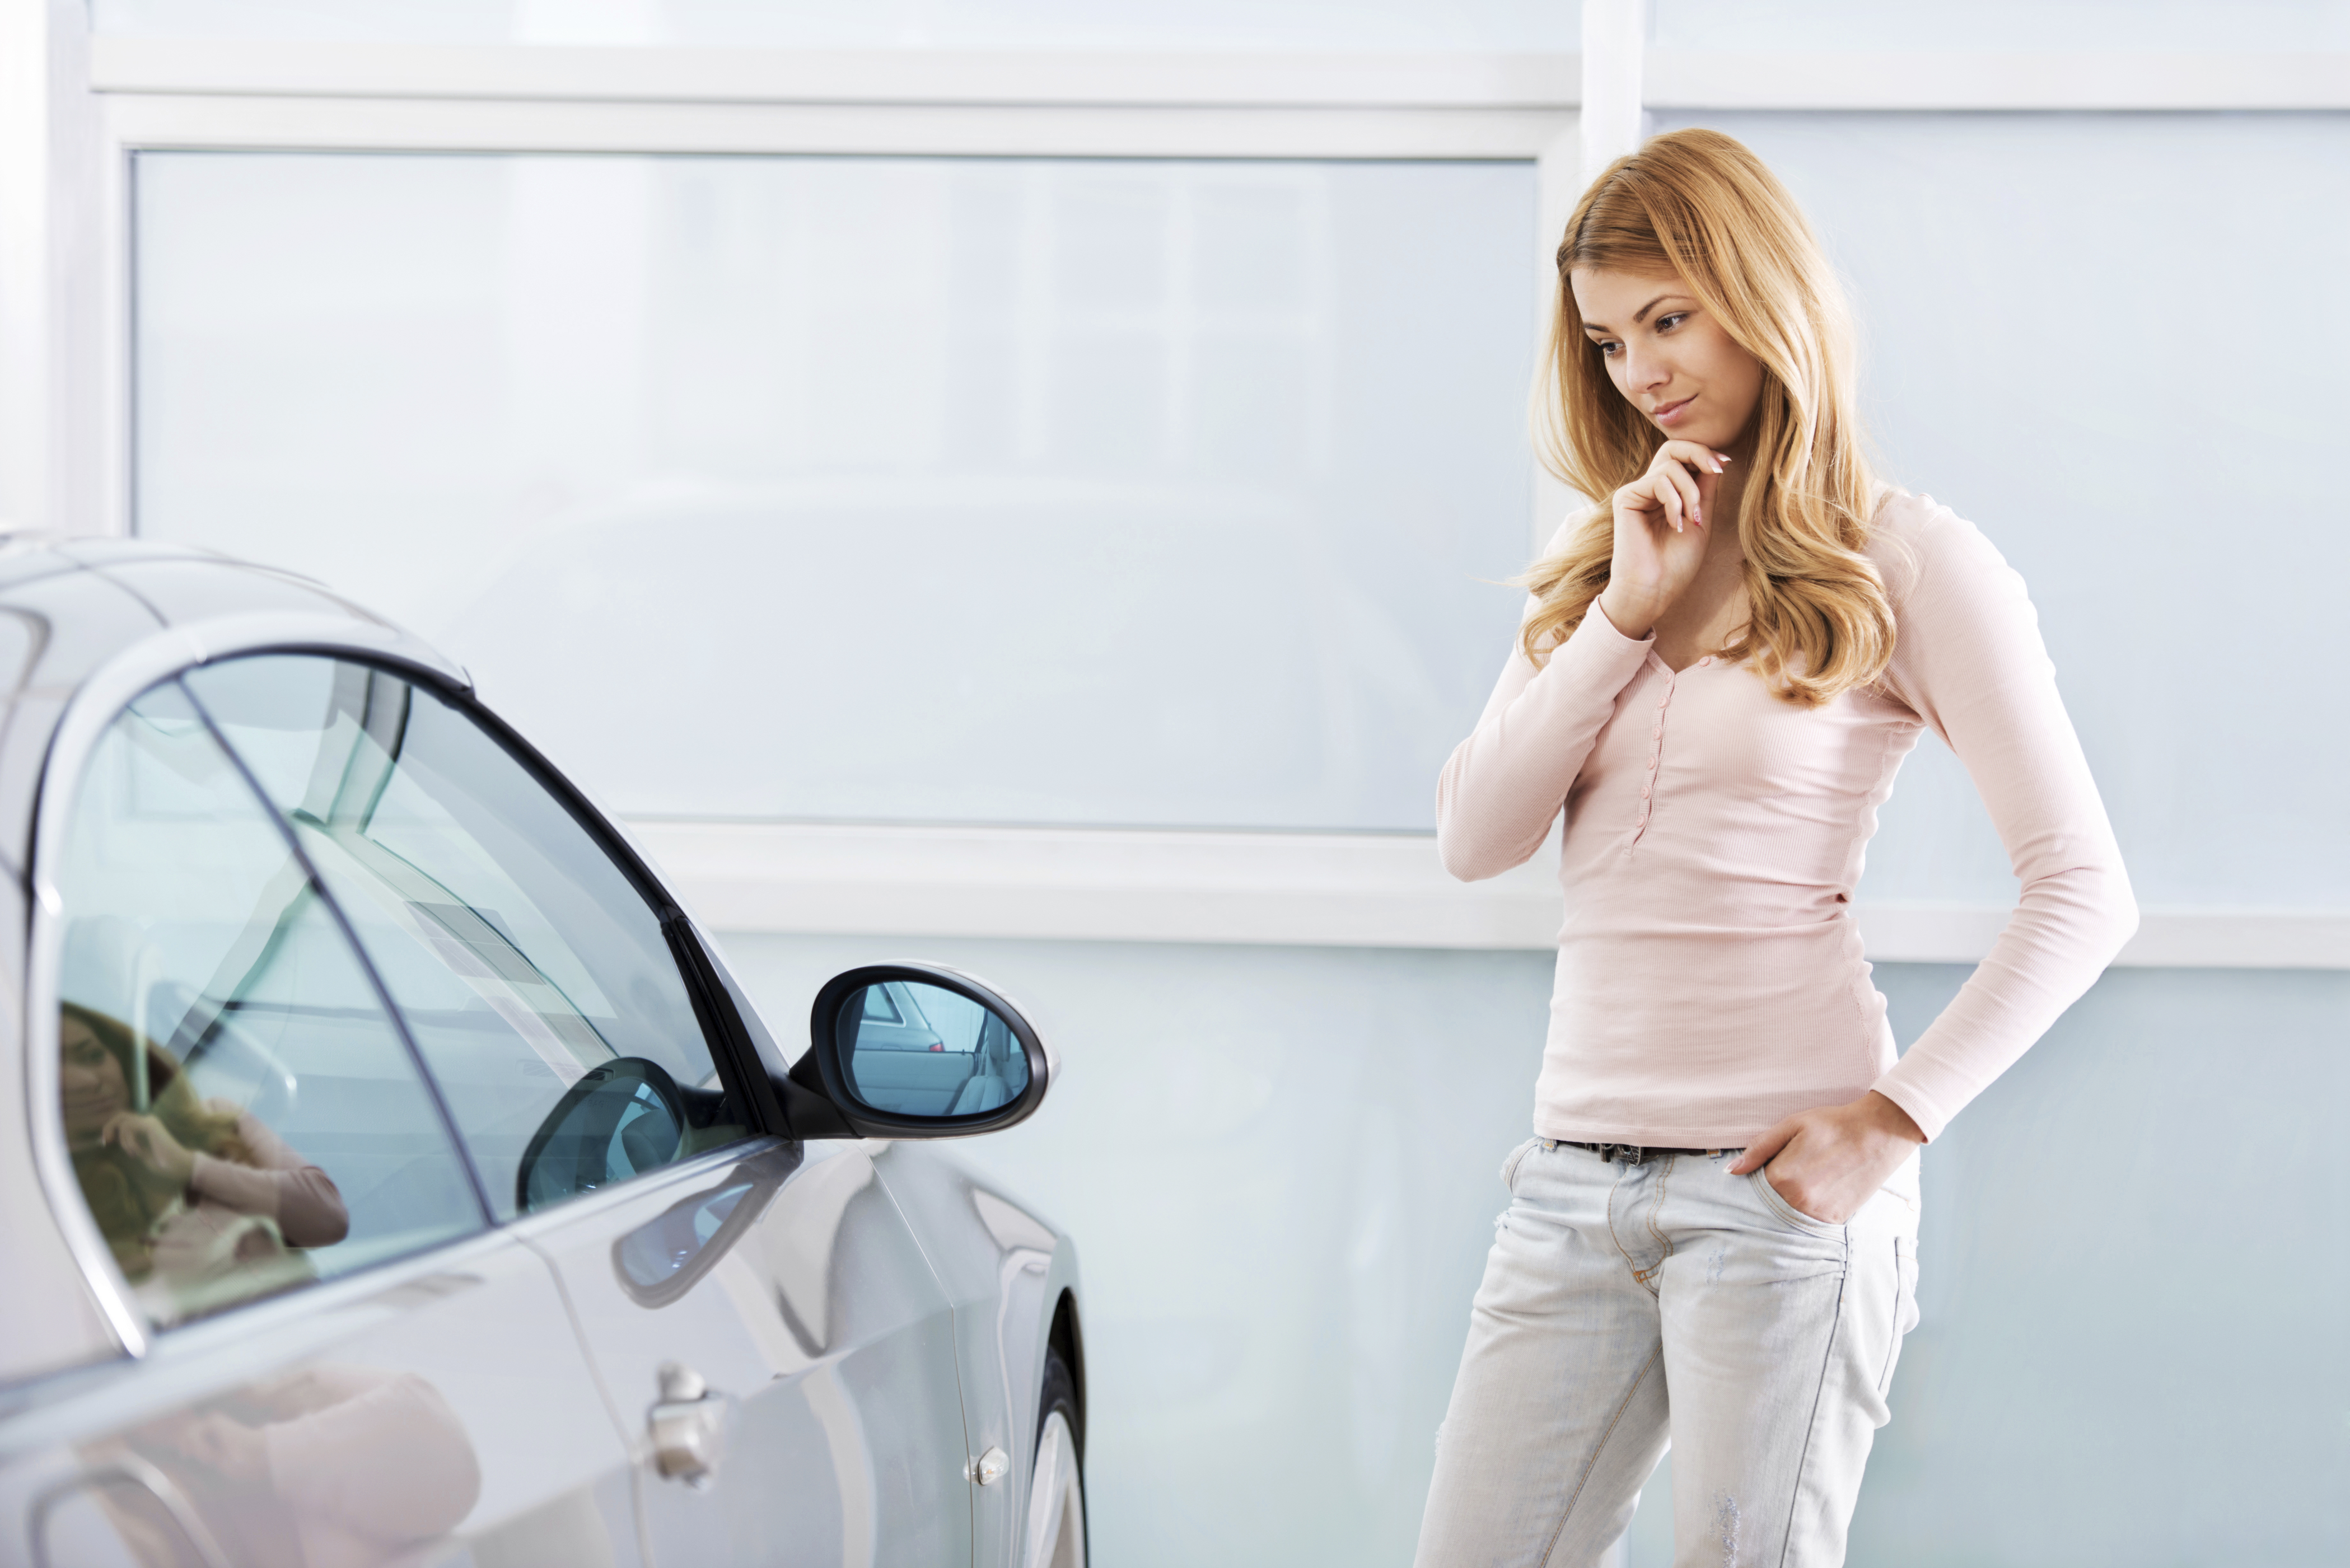 Young woman thinking to buy a car in a showroom.